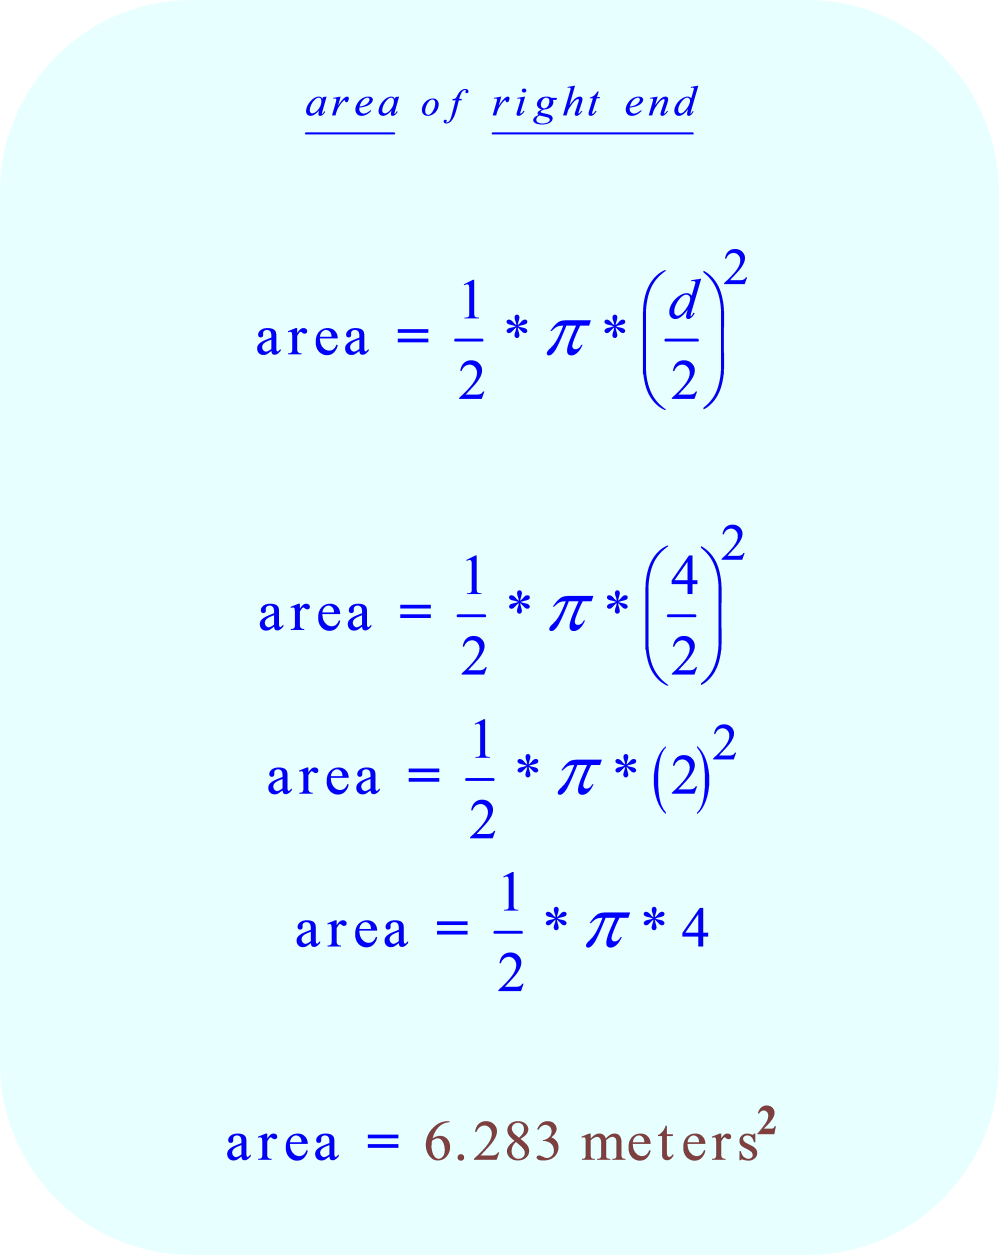 area of right semi-circular table end